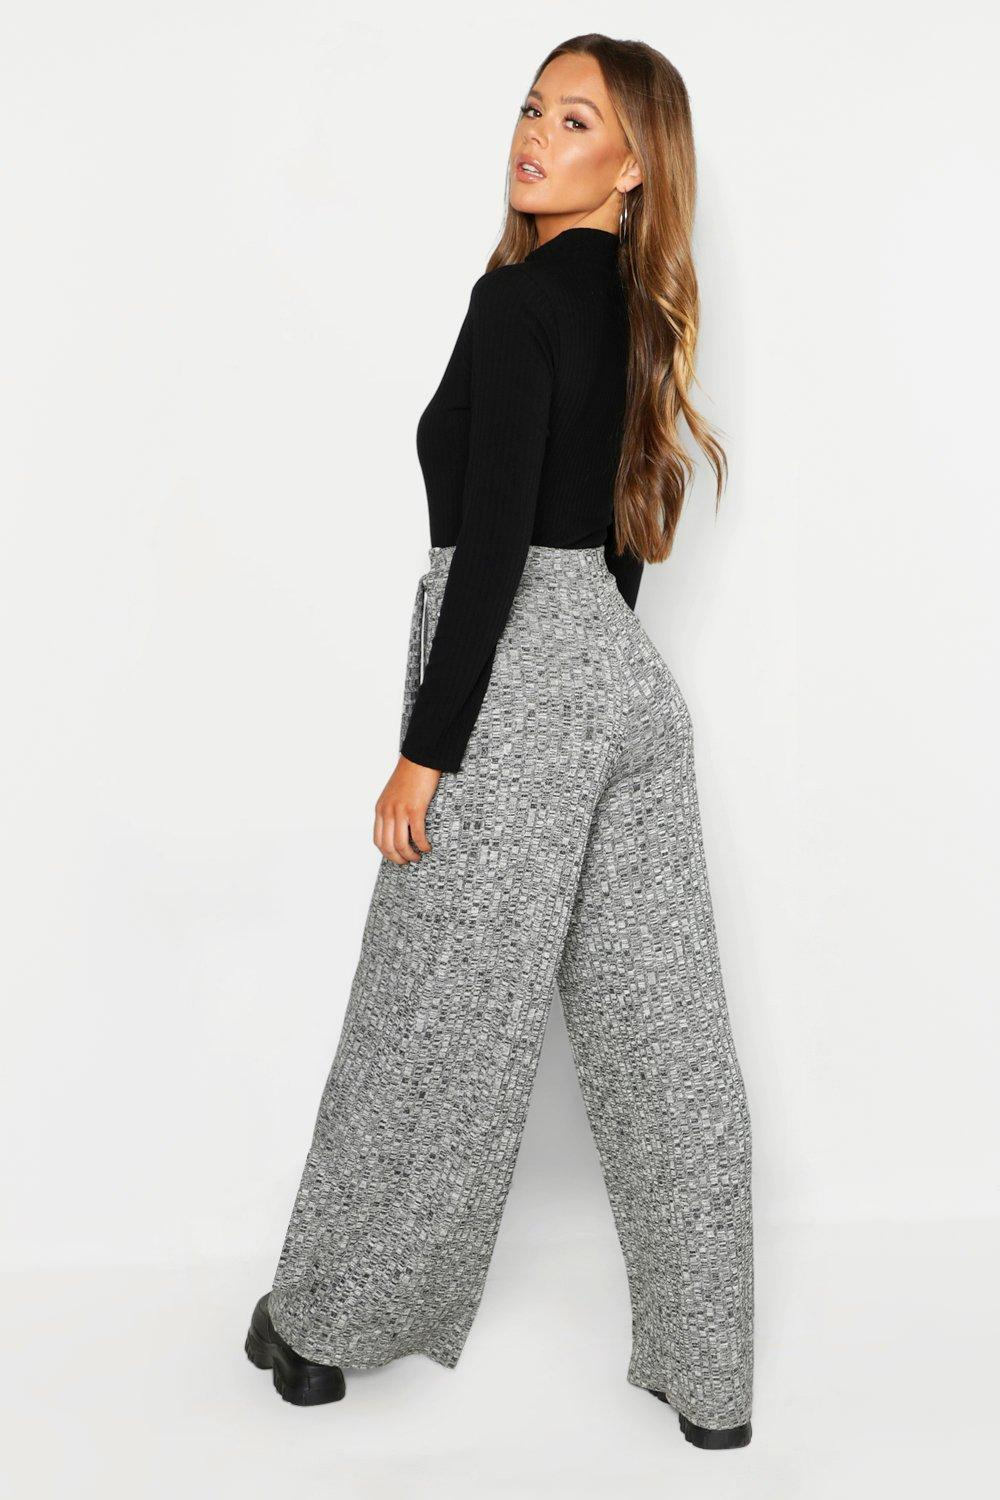 7ac3b6787183 Boohoo - Gray Knitted Rib Tie Waist Wide Leg Trousers - Lyst. View  fullscreen